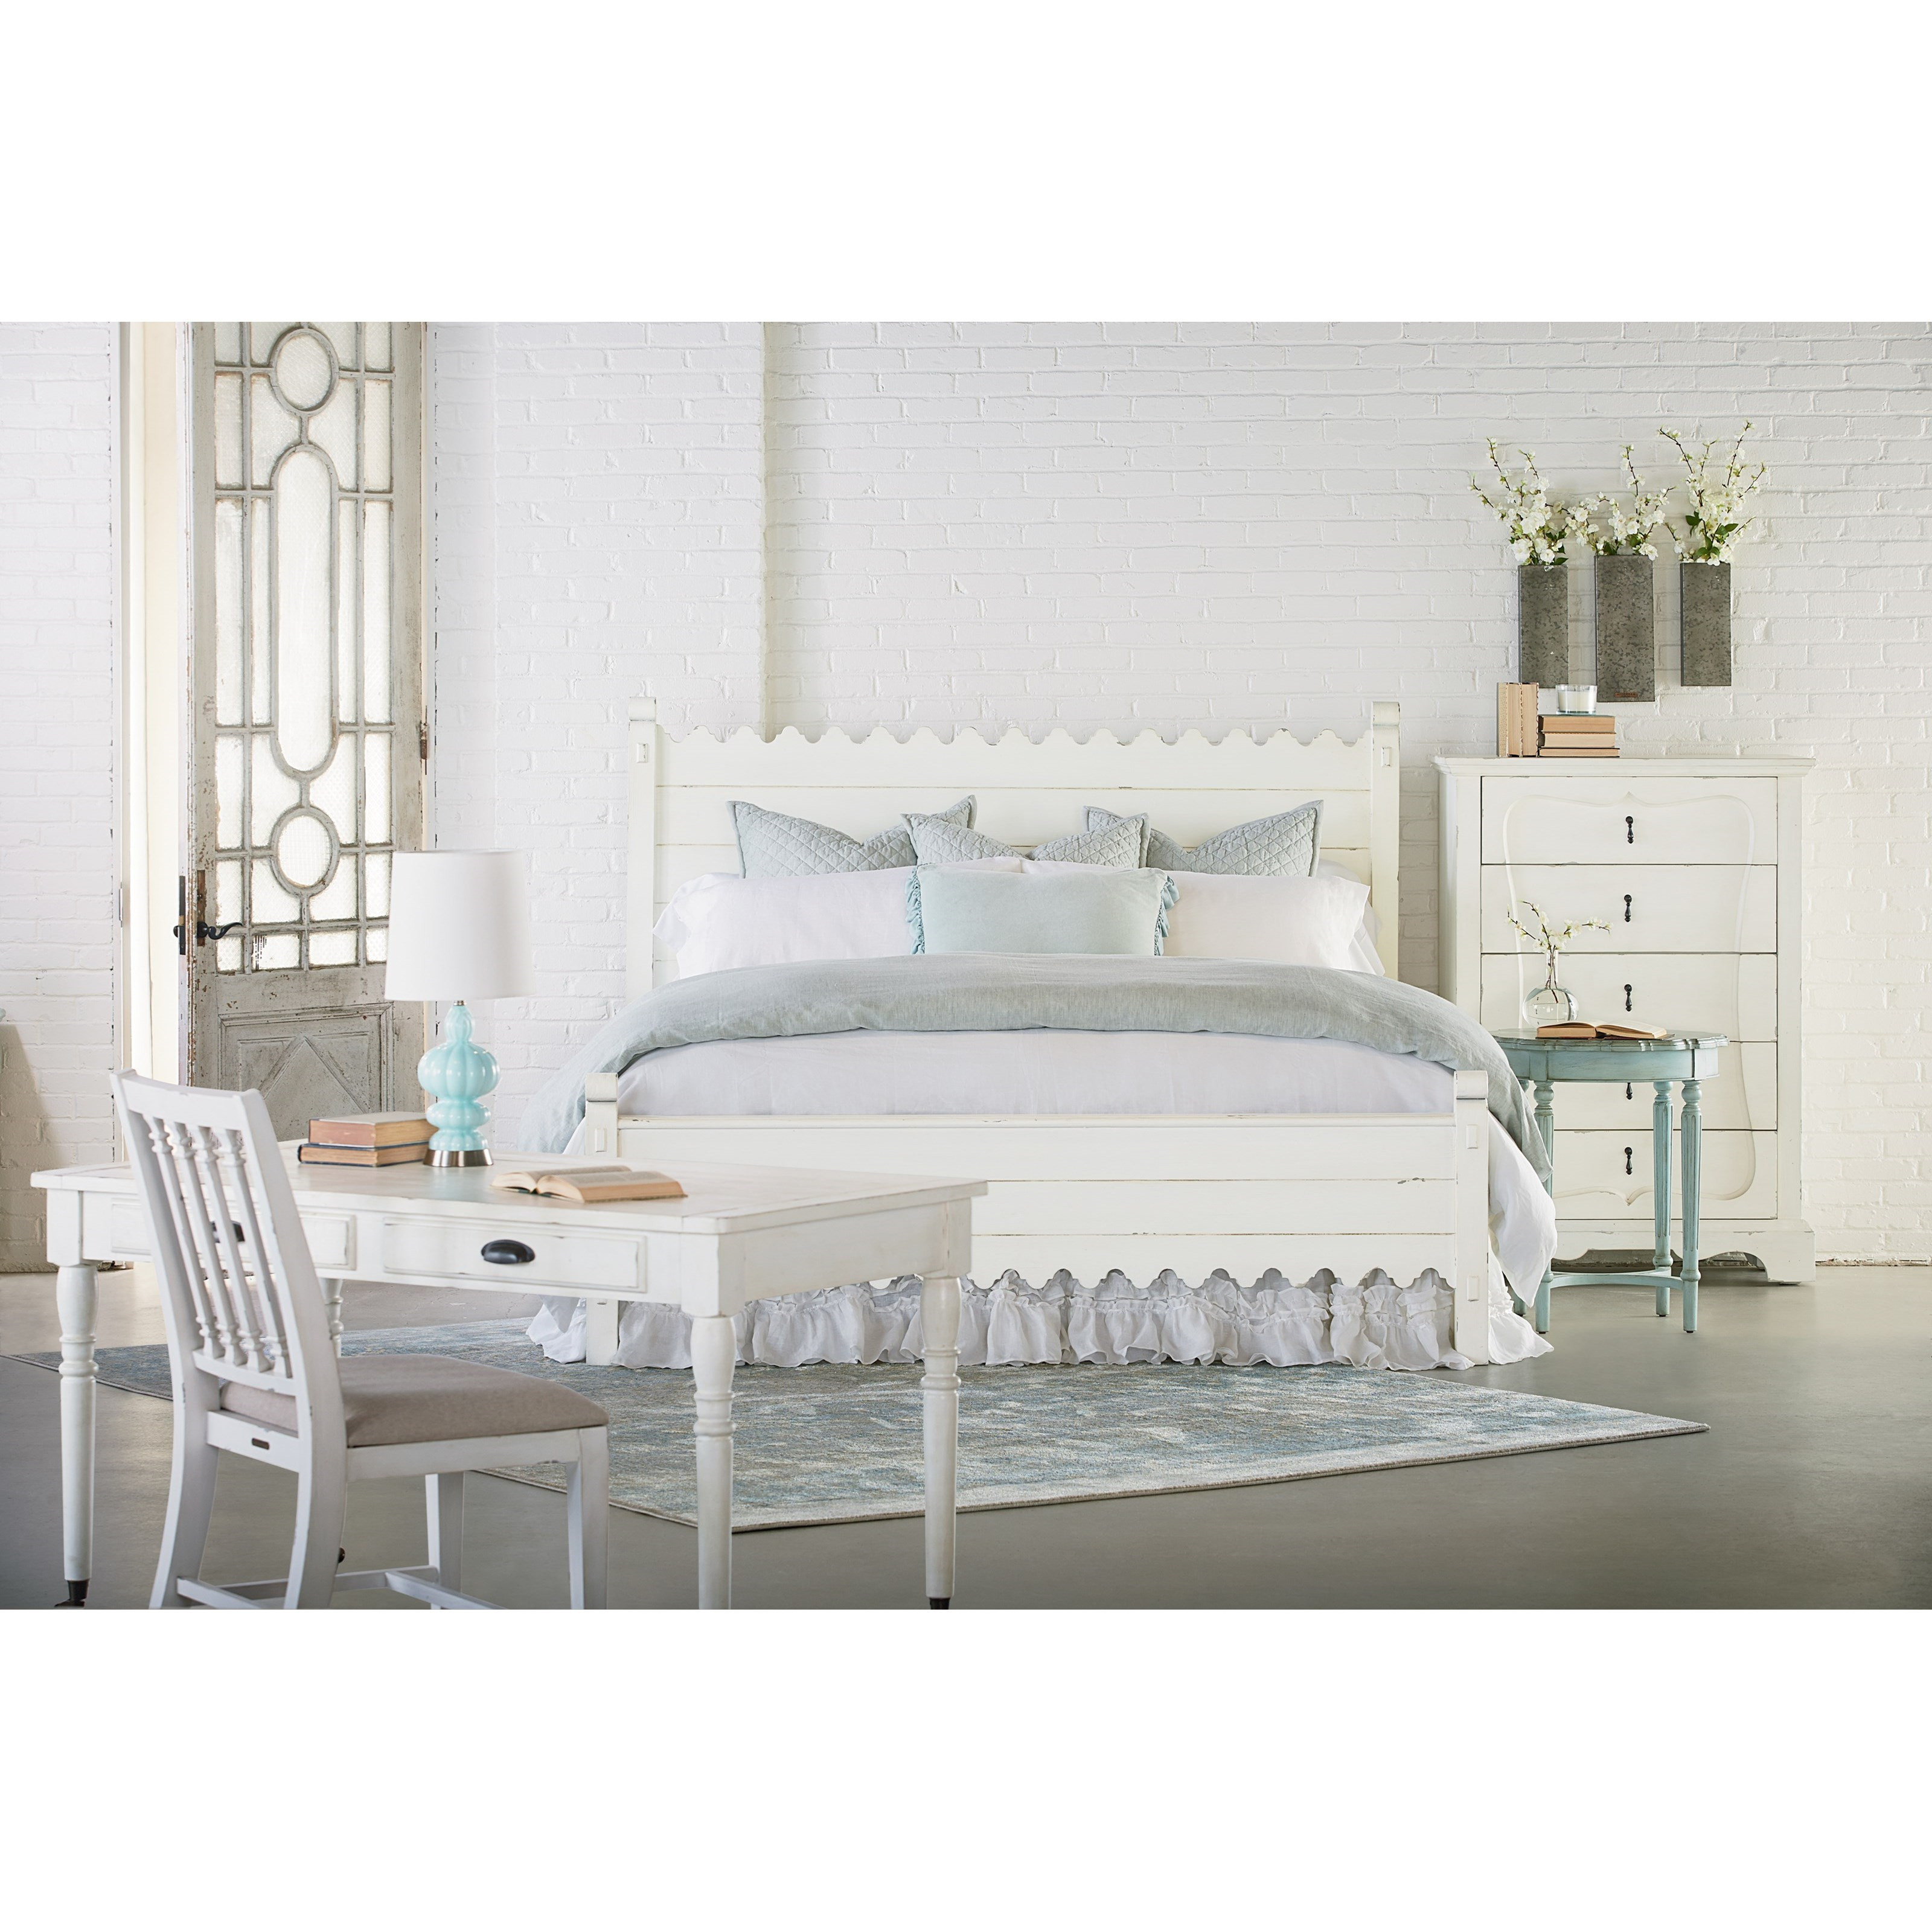 Queen Bed With Scallop Trimmingmagnolia Homejoanna Gaines Intended For Most Up To Date Magnolia Home Scallop Antique White Cocktail Tables (Gallery 11 of 20)